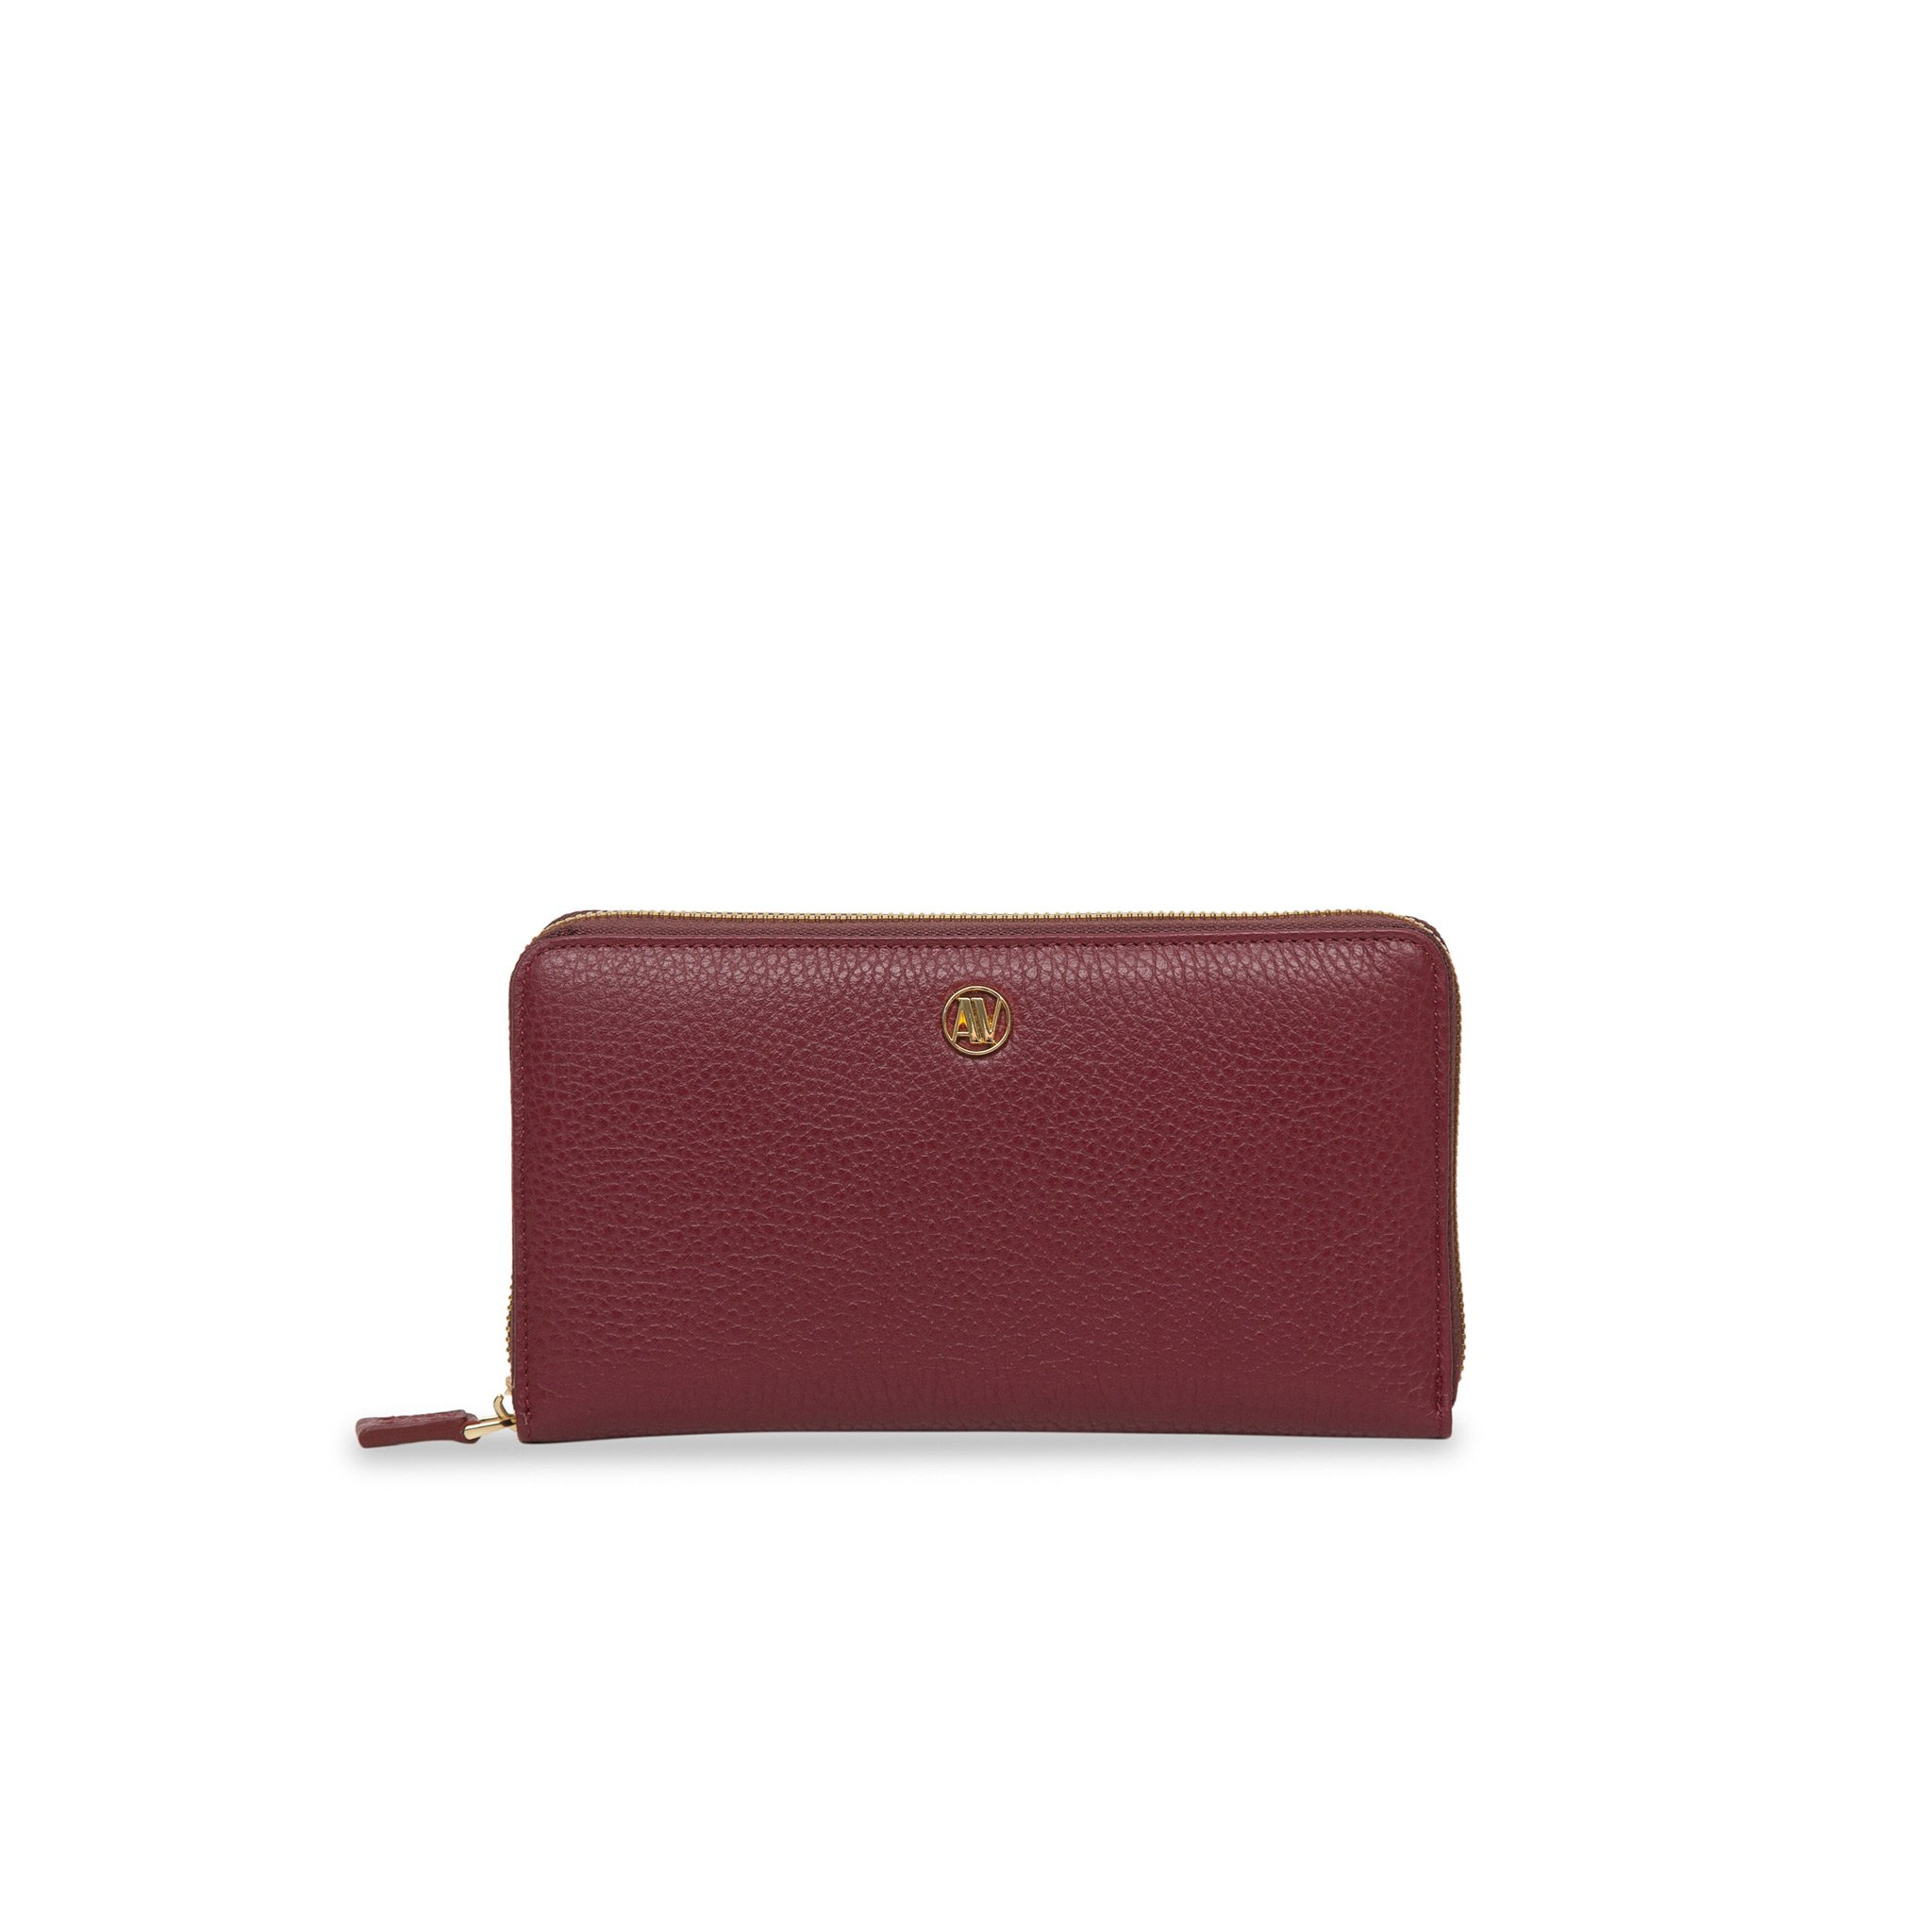 Rimini Zip Around leather Wallet - Bordeaux